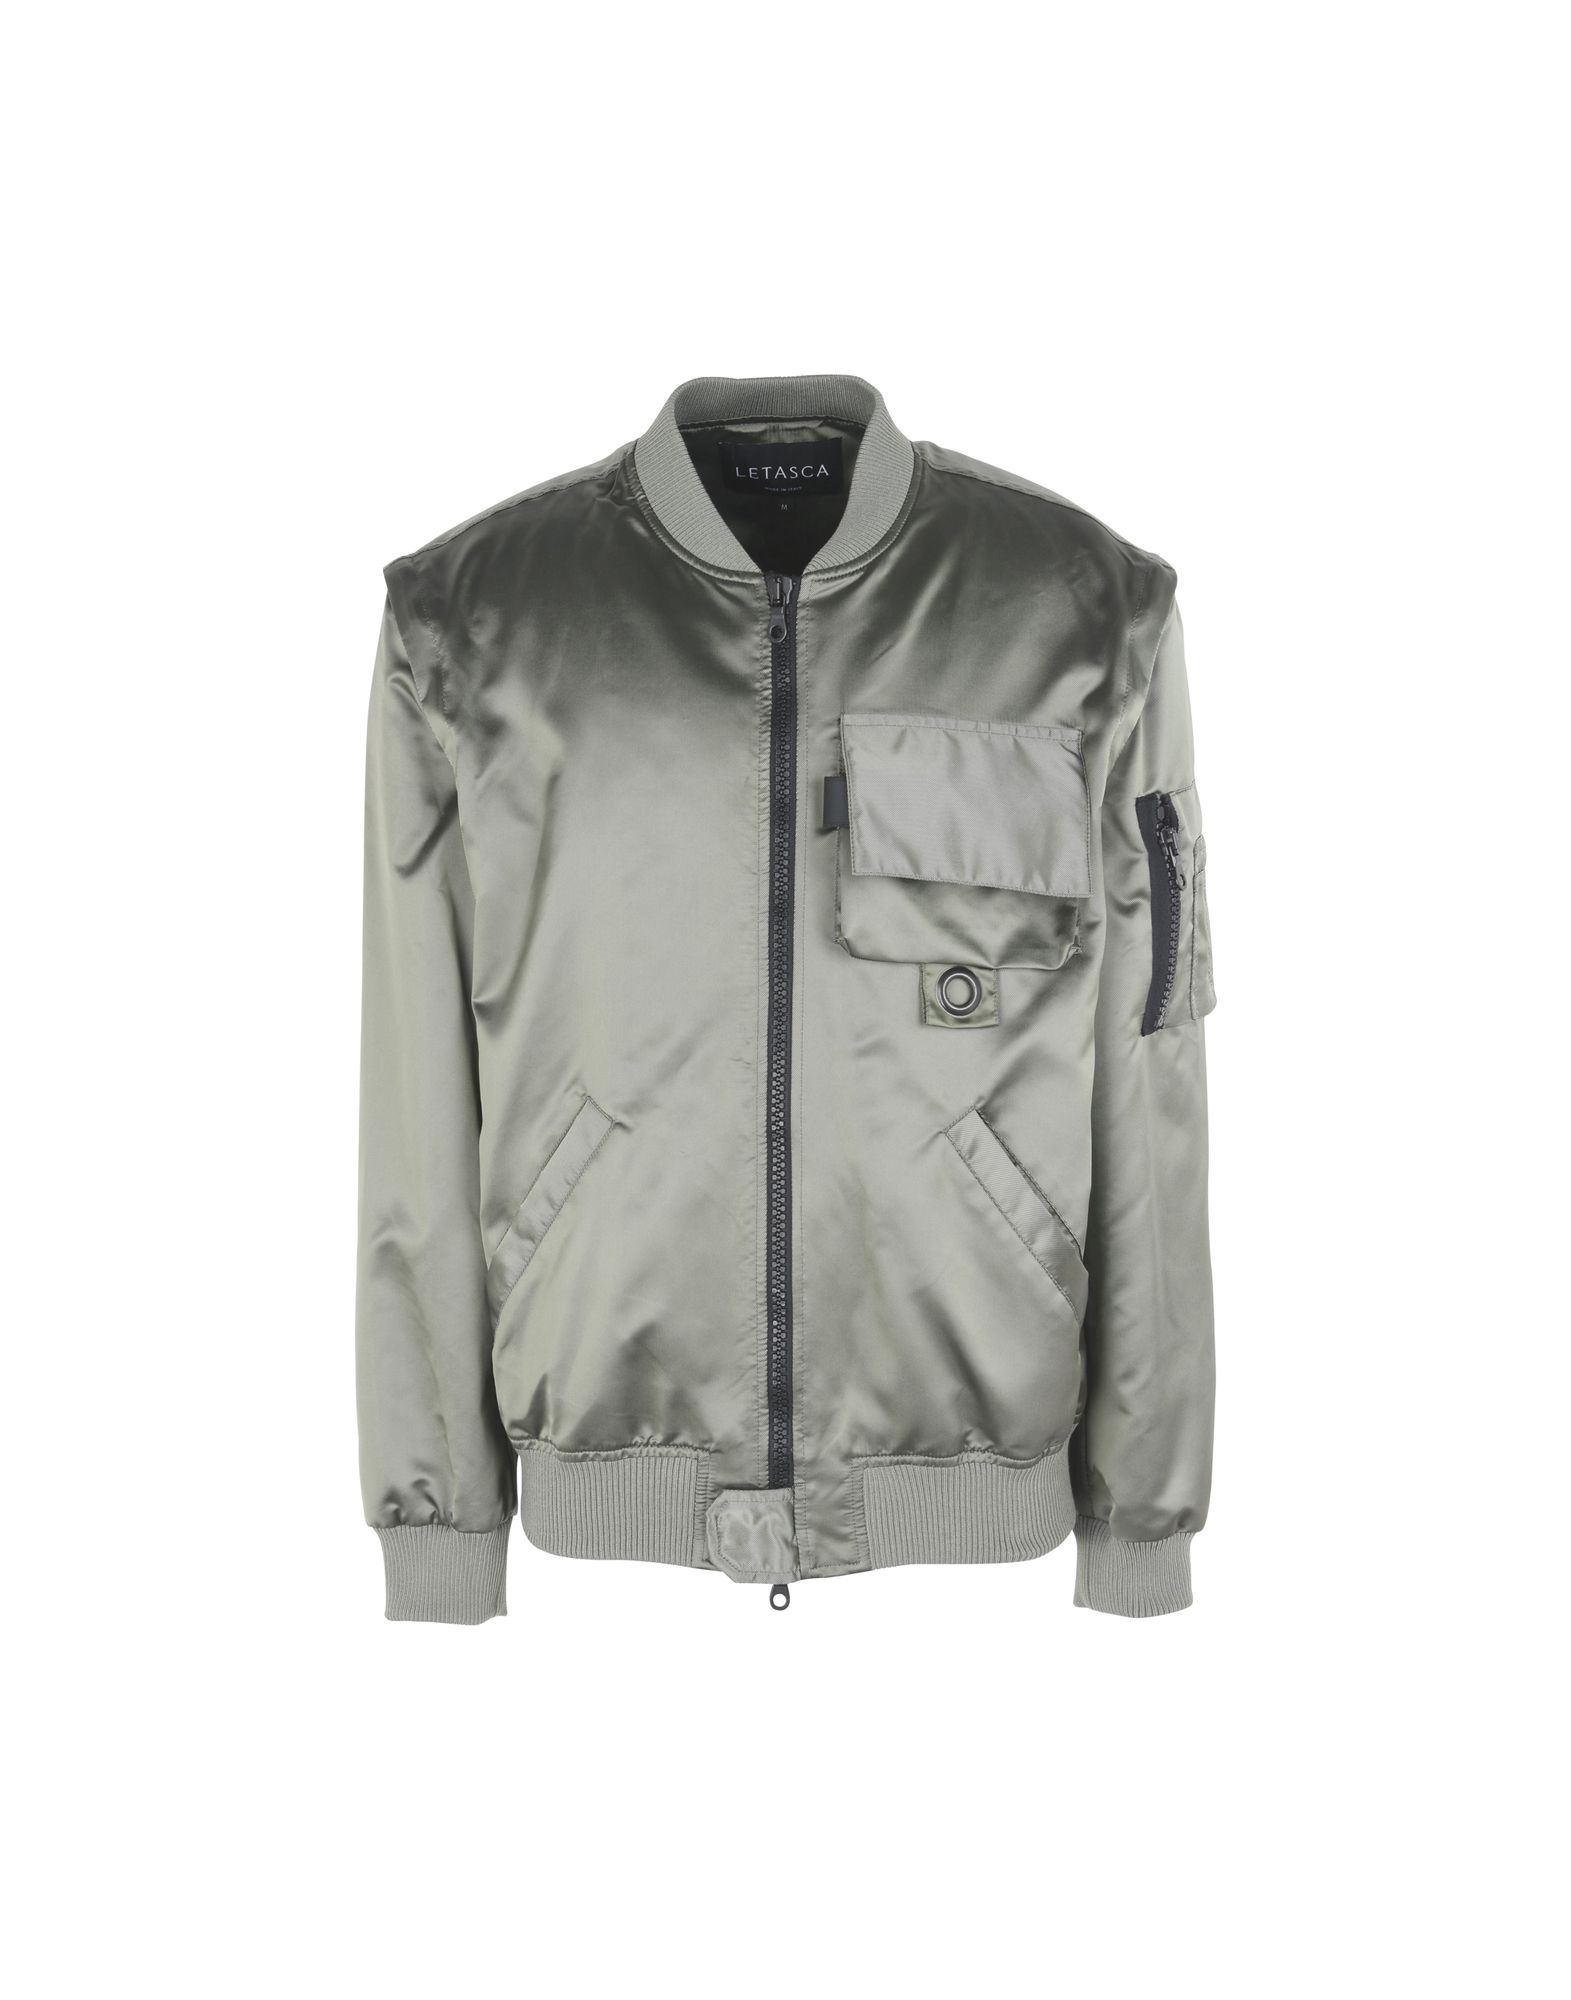 LETASCA Bomber in Military Green